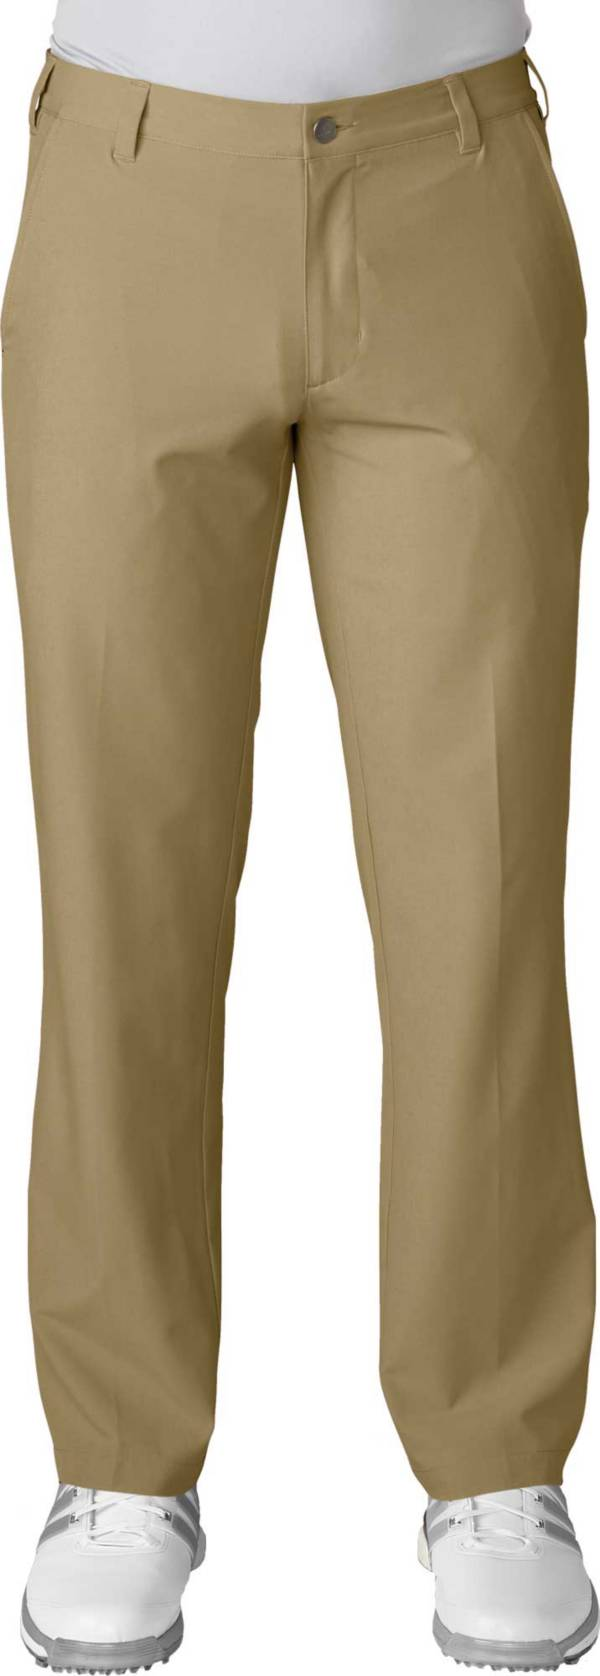 adidas Men's Ultimate365 Golf Pants - Discontinued Article product image